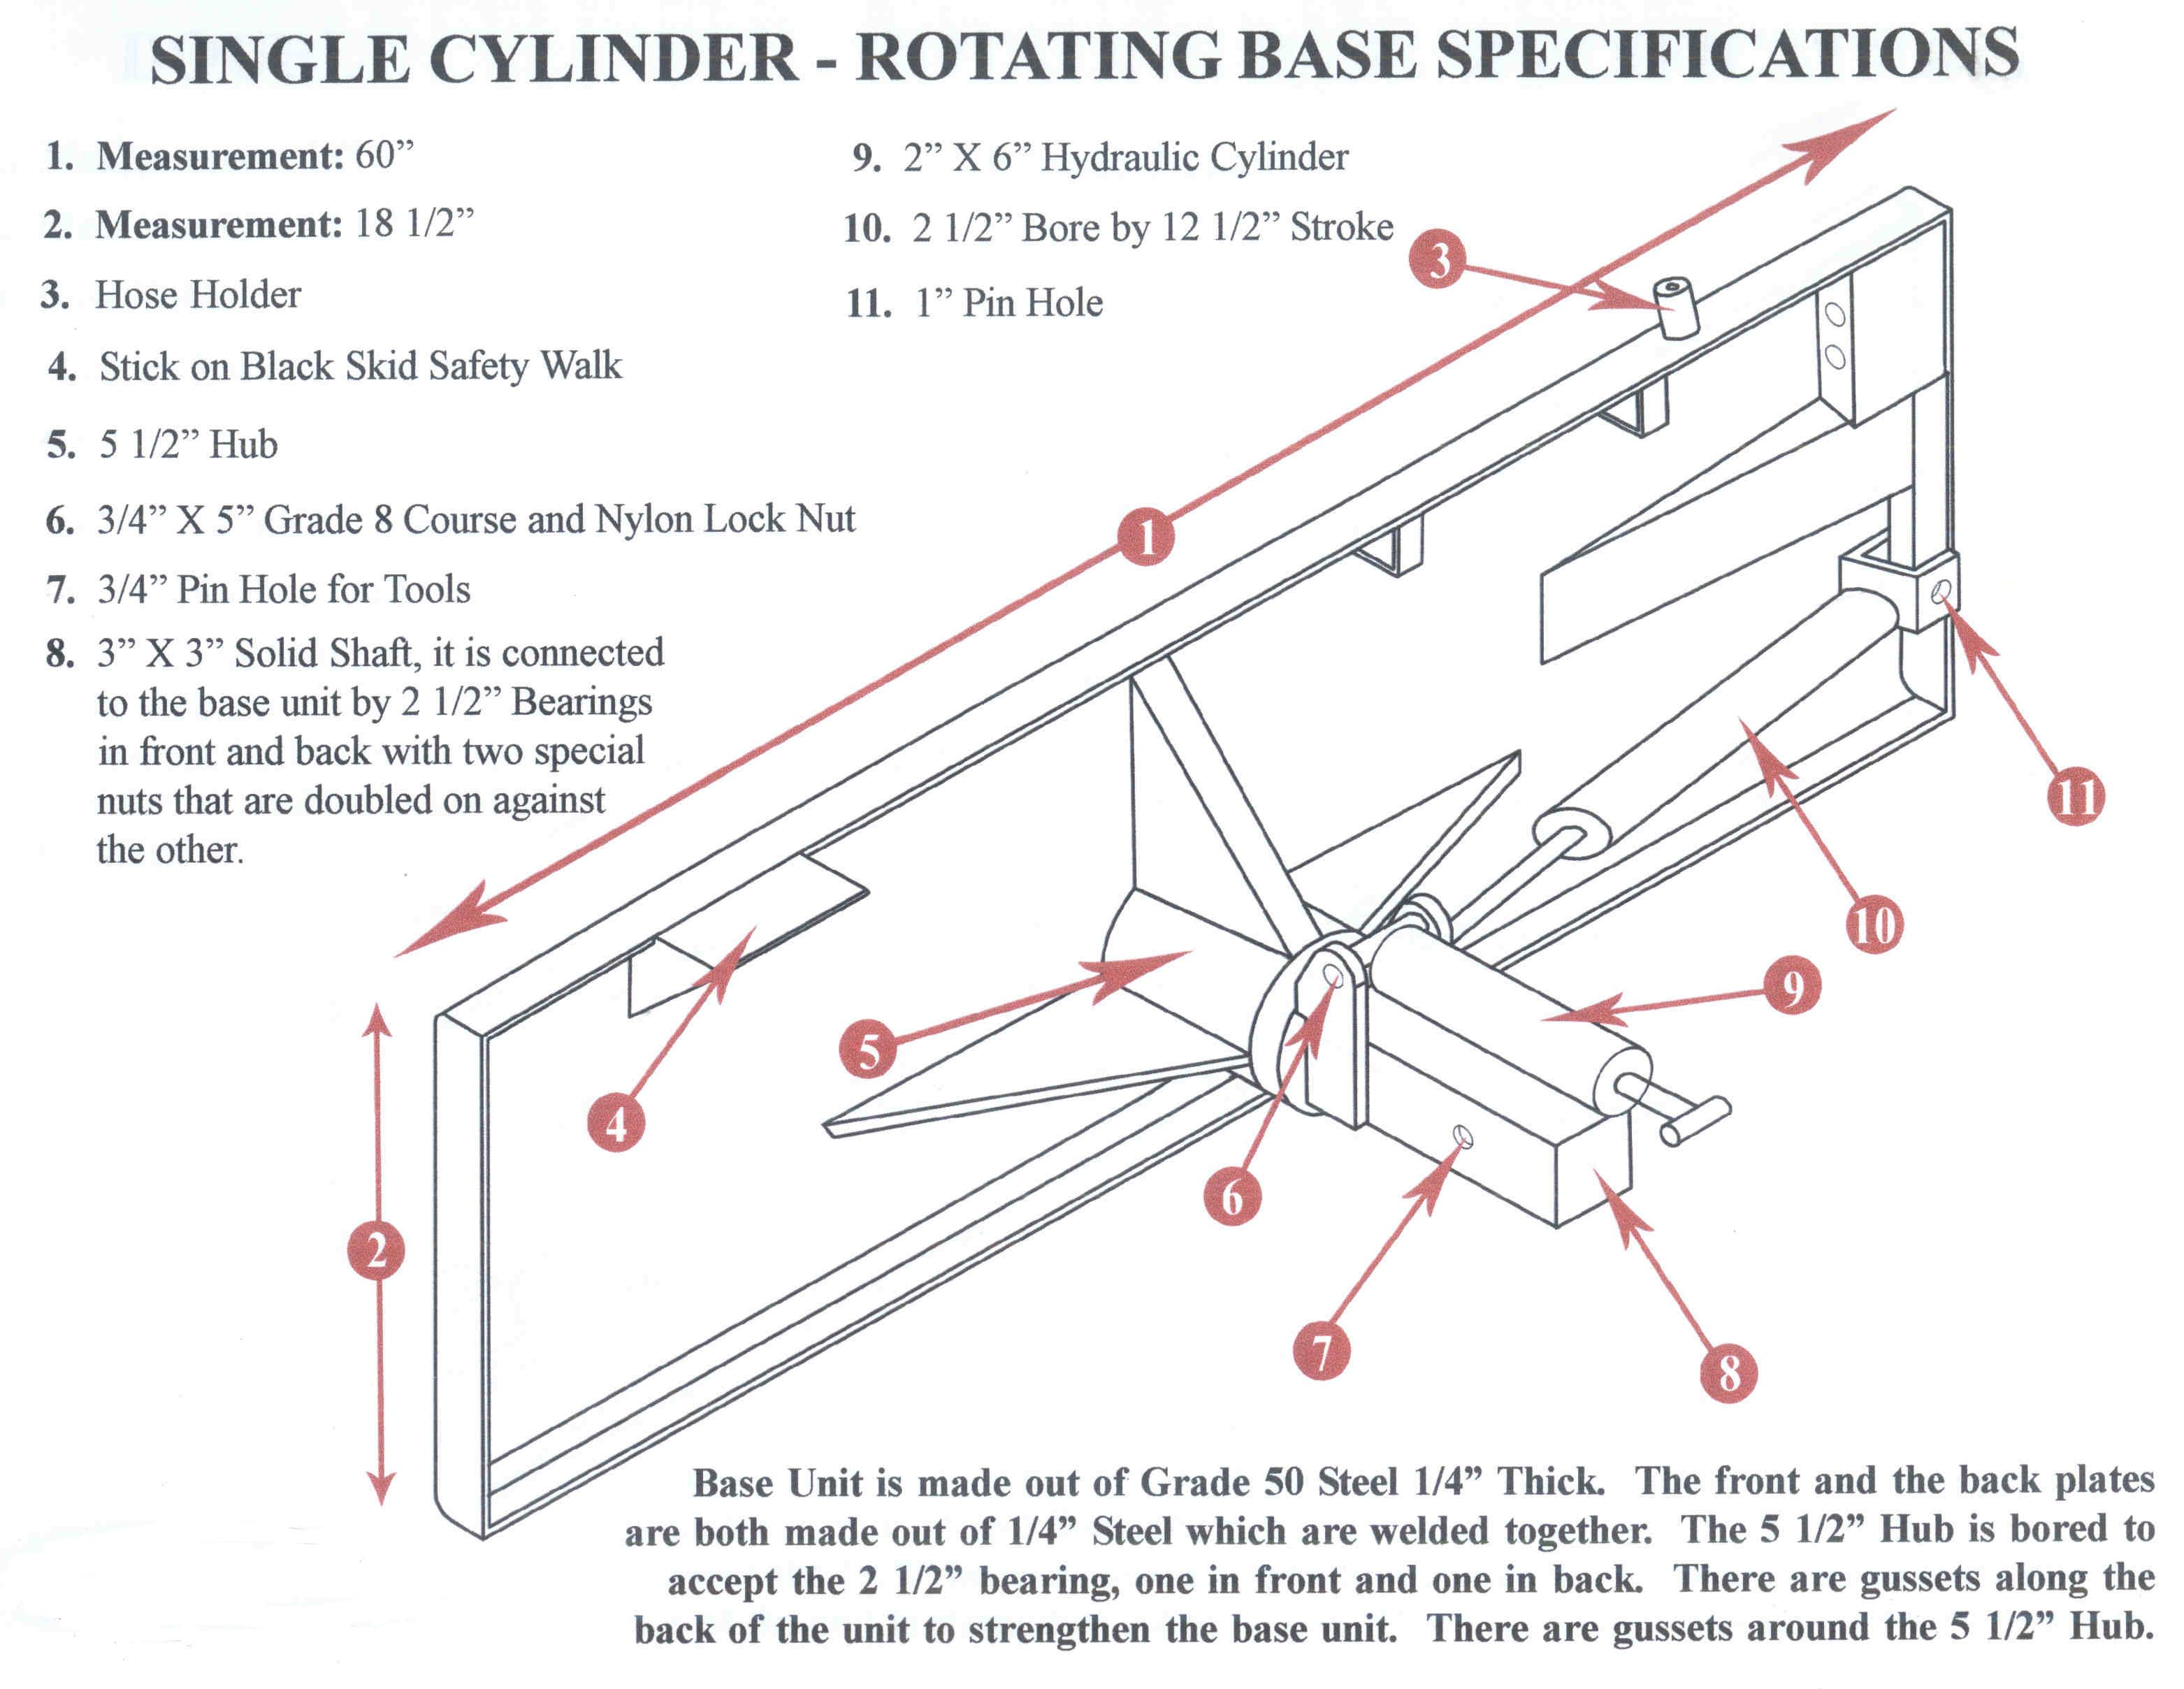 Specifications On Single Cylinder Rotating Base Plate